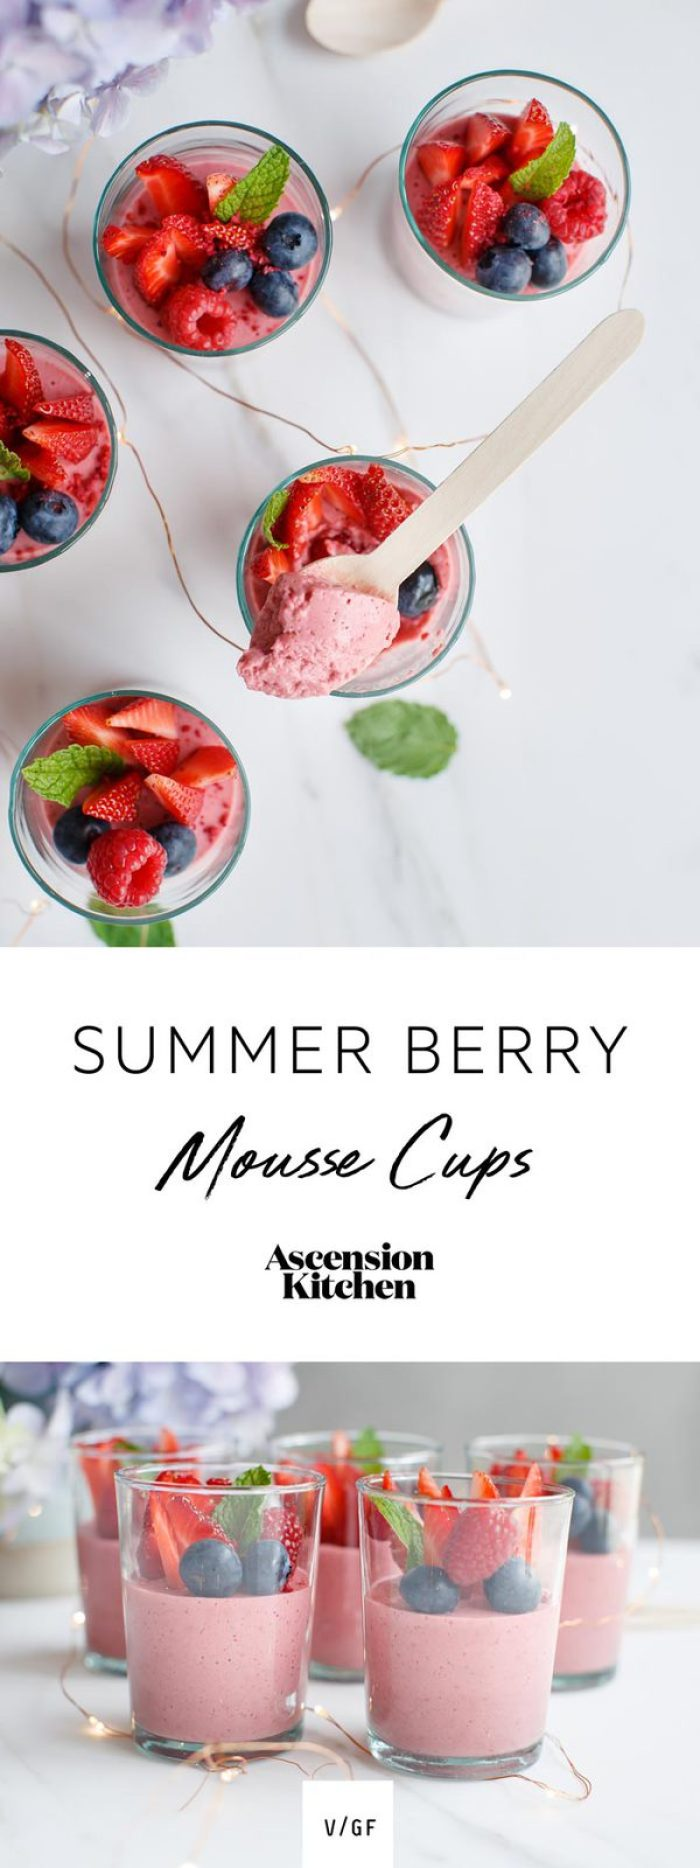 Summer Berry Mousse Cups - dairy free, nut free, gluten free